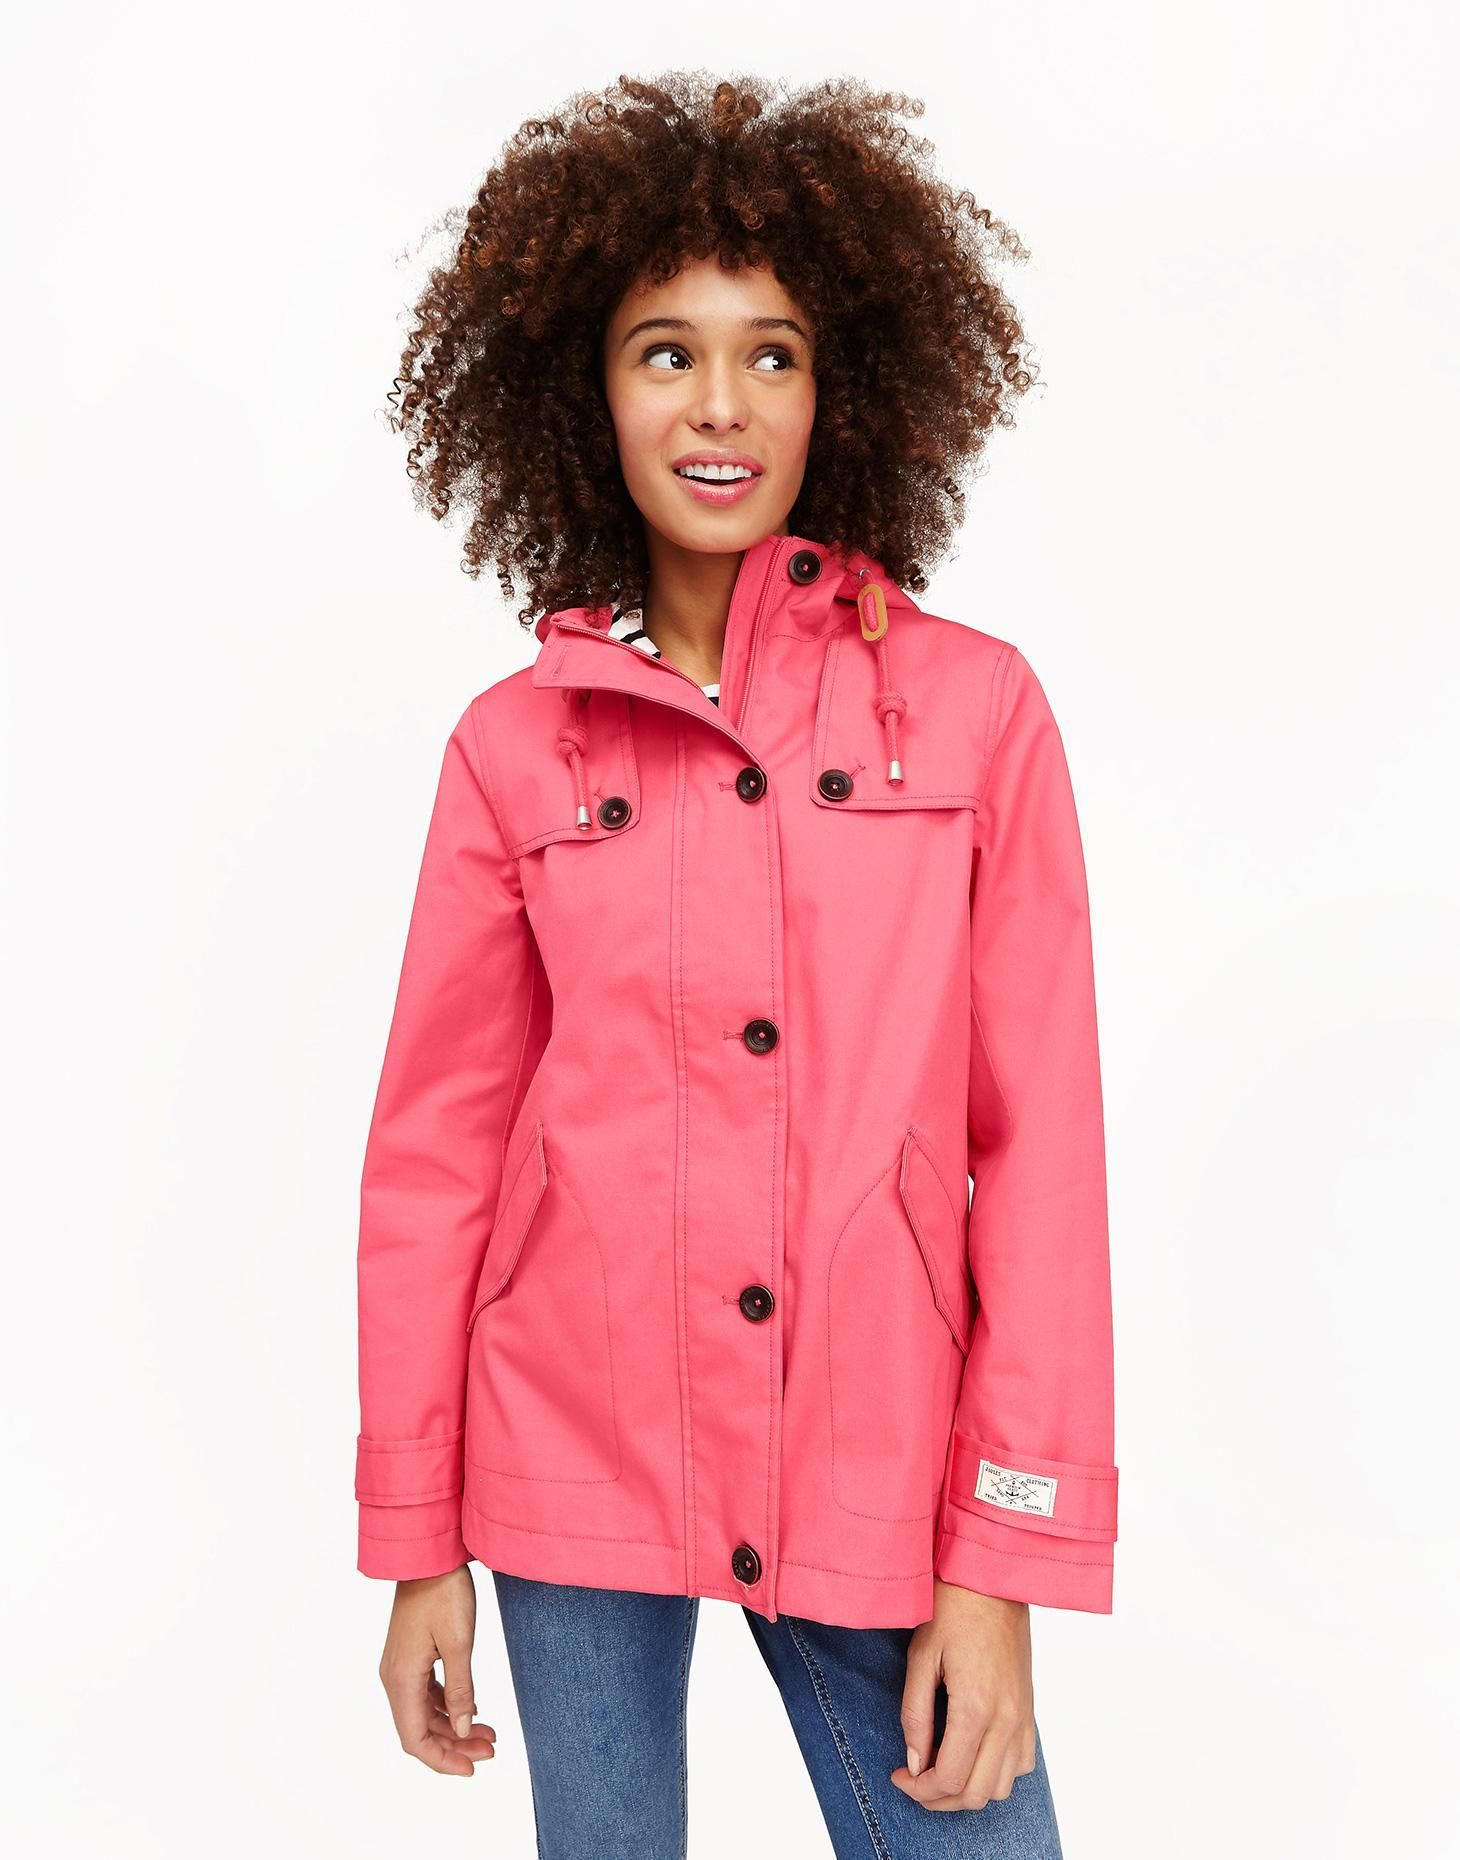 Coast Red Sky Waterproof Jacket | Joules US | Waterproof